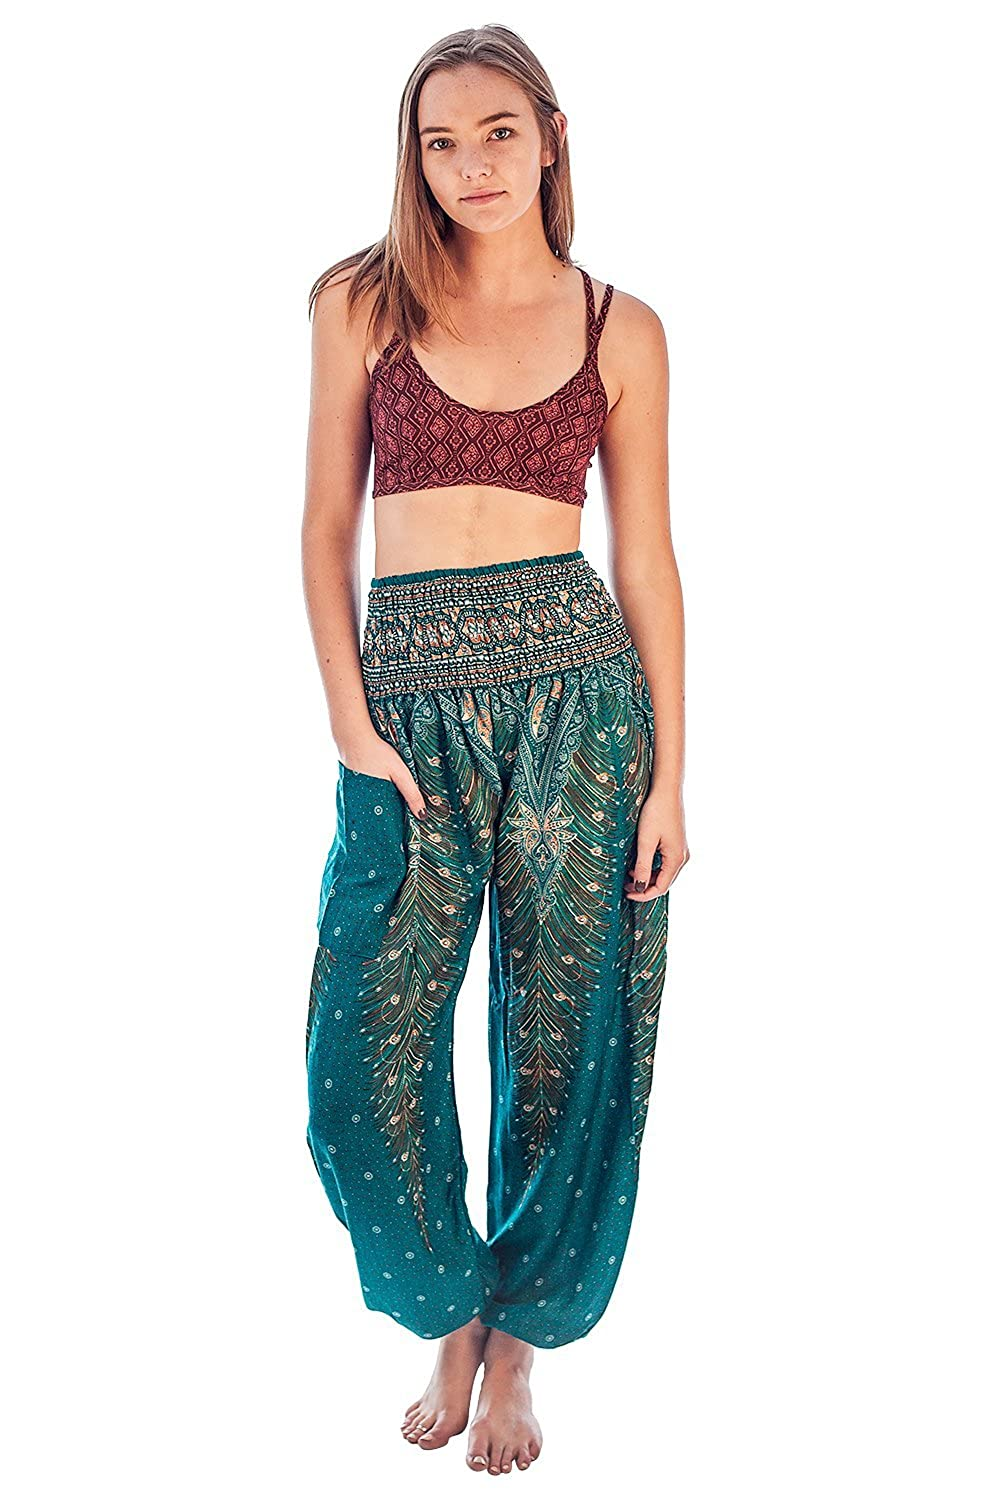 Pants - Ultra Comfy, Banded Waist. Loose Fit, One Size, 3 Color Choices